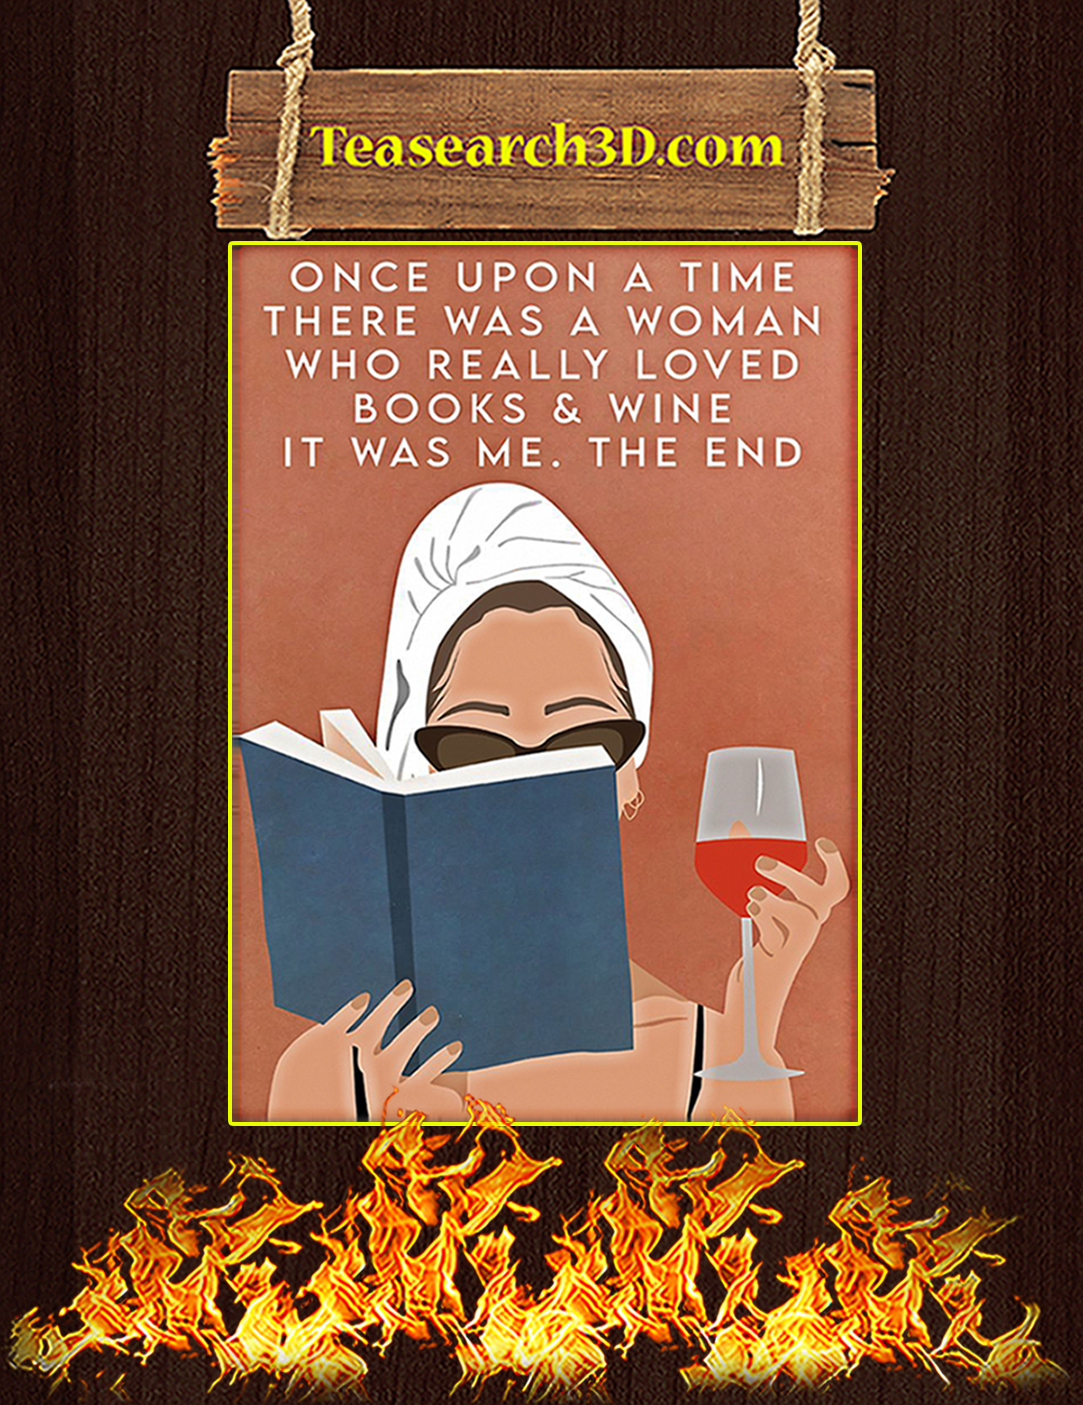 Once upon a time there was a woman who really loved books and wine poster A2